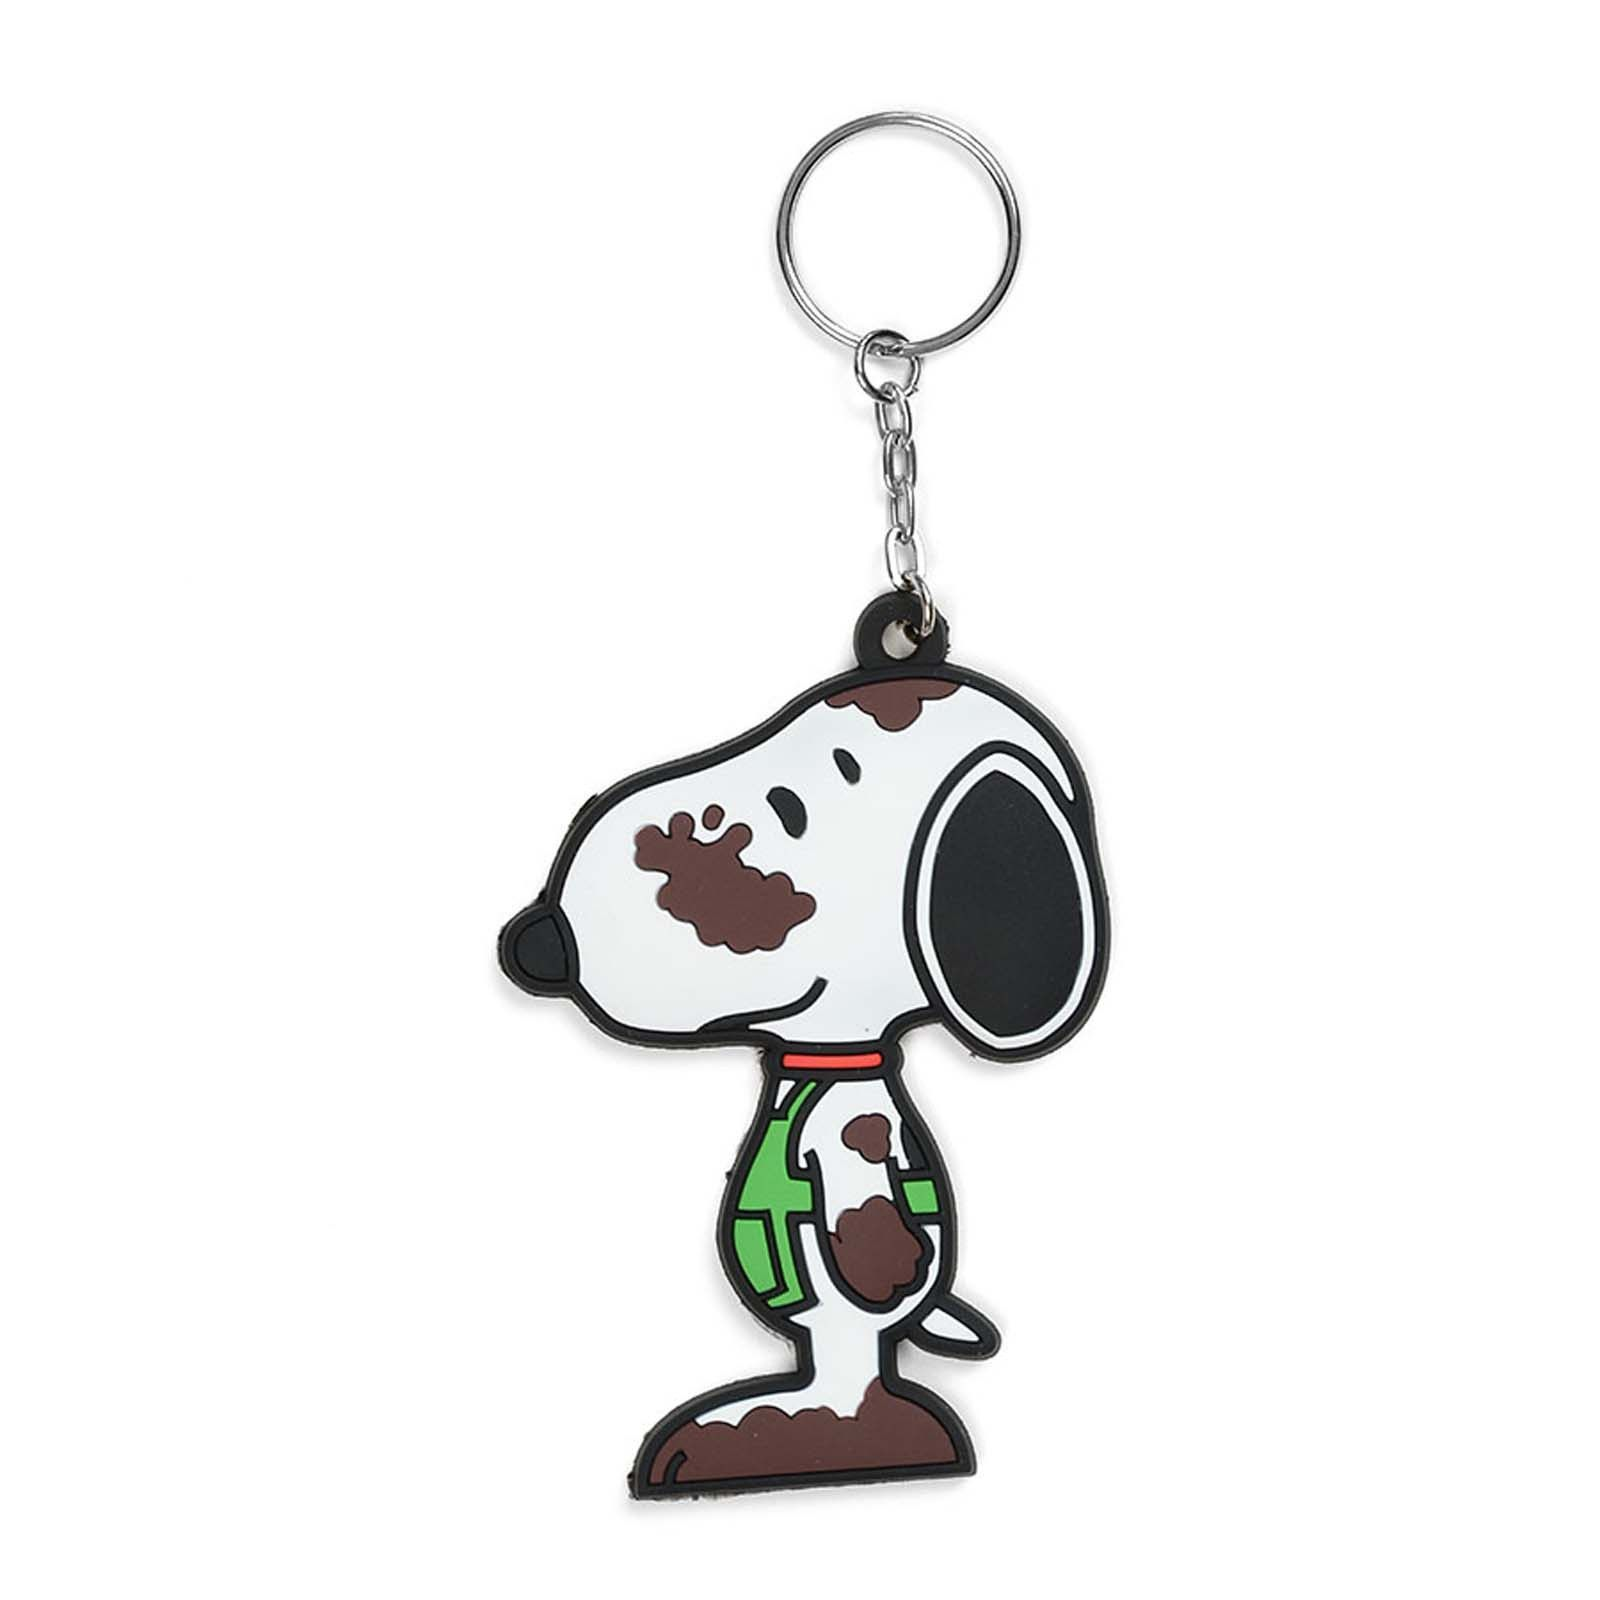 Peanuts Snoopy By Design Dirty Dog Keychain Department 56 Retired